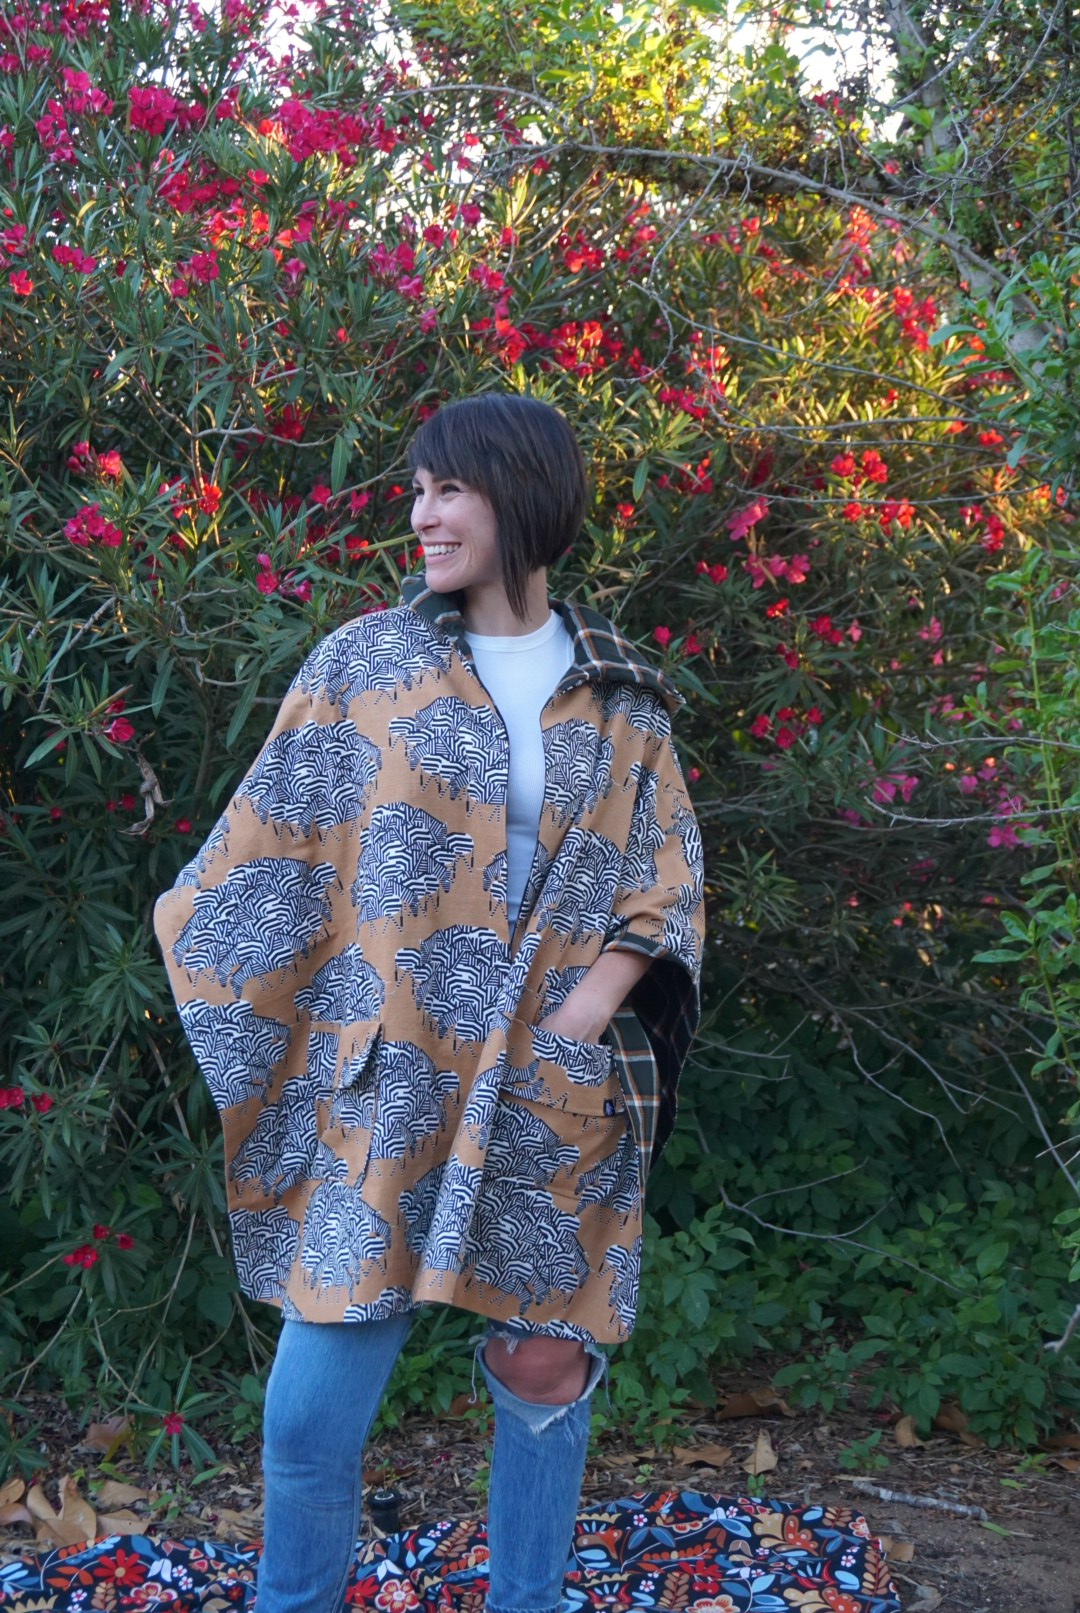 Mary smiles while posing in her new poncho. She has her left hand in the poncho's front pocket.